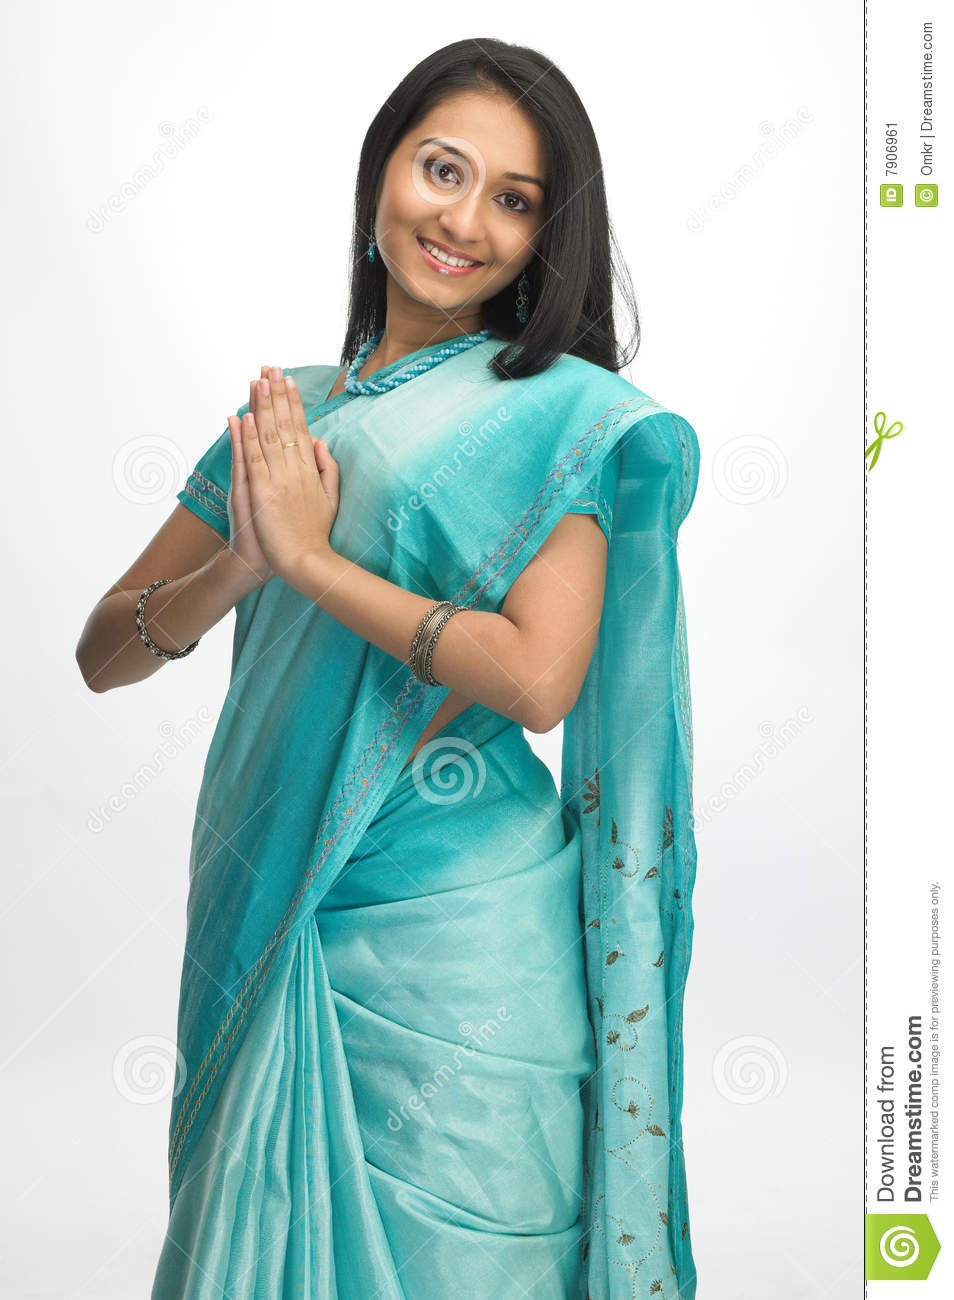 Indian modern dress - Indian Woman In Sari With Welcome Posture Indian Woman Standing In